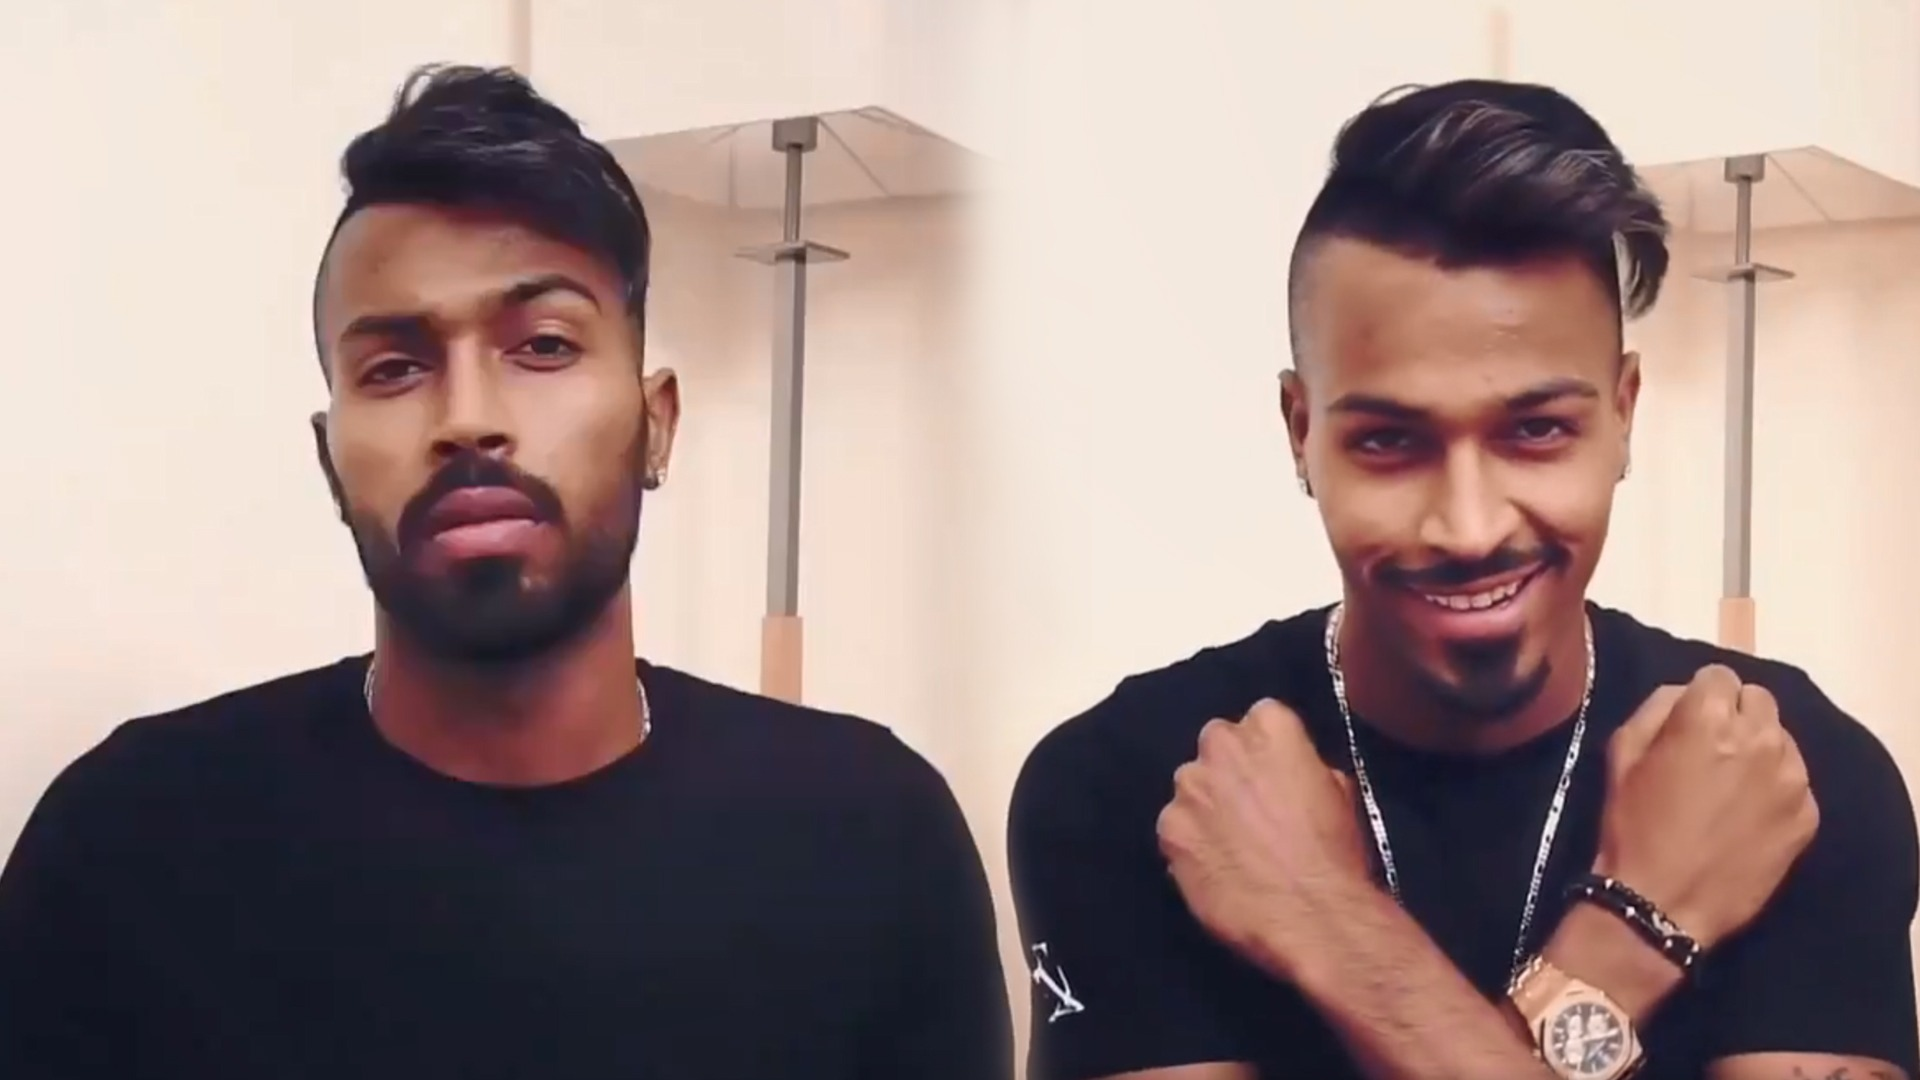 WATCH: Hardik Pandya joins 'Break The Beard' trend following his brother Krunal Pandya